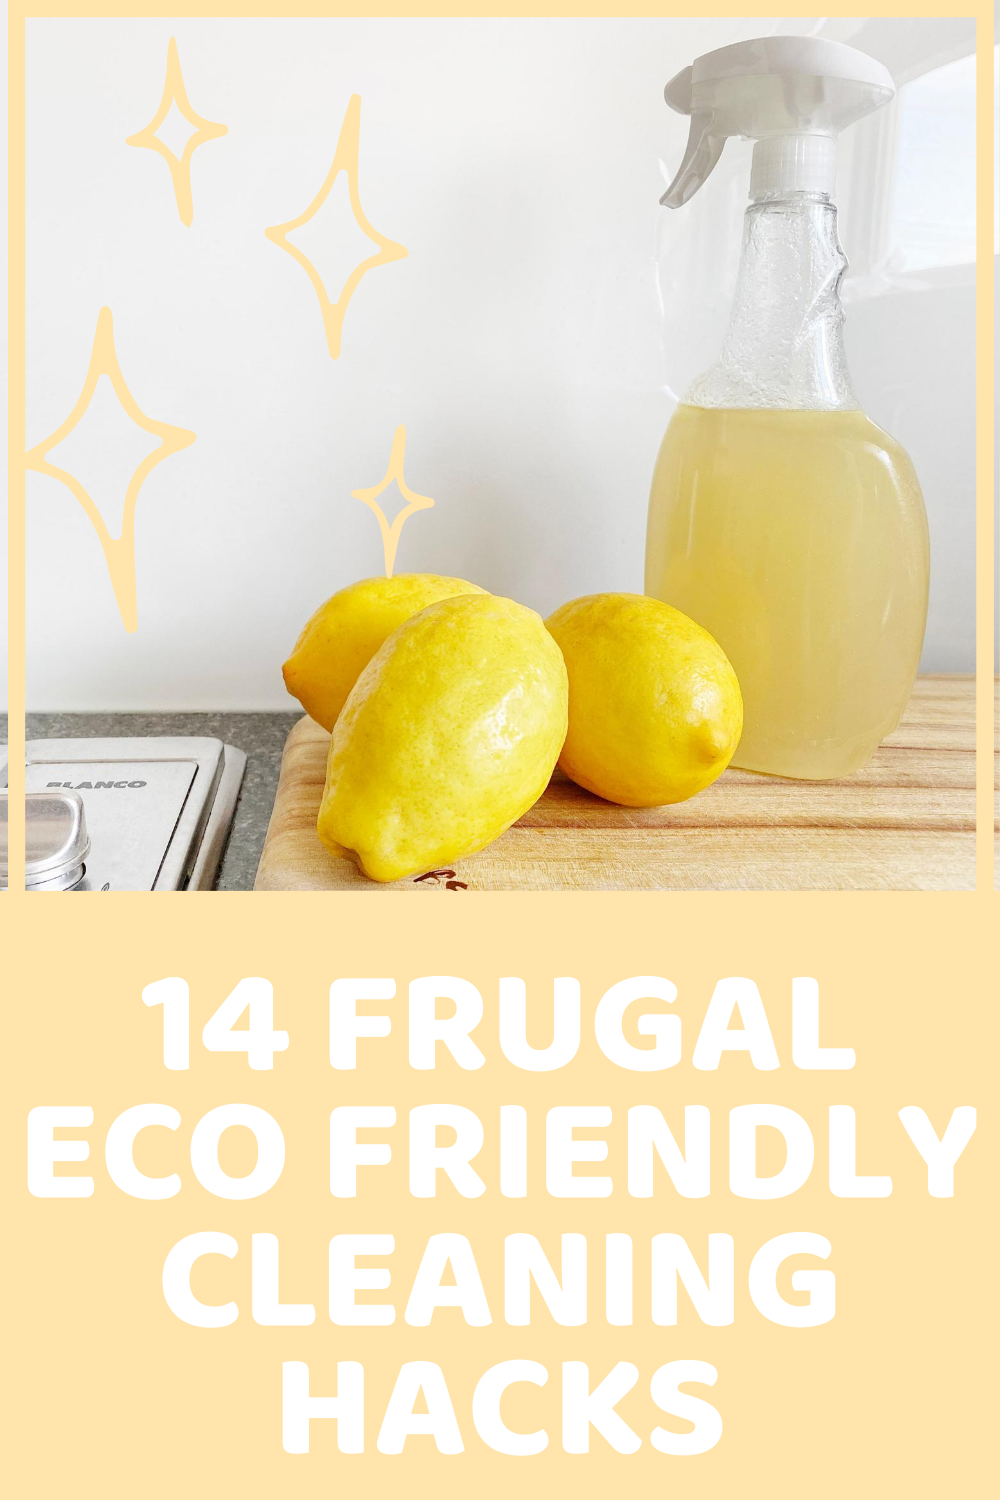 14 Frugal Eco Friendly Cleaning Hacks